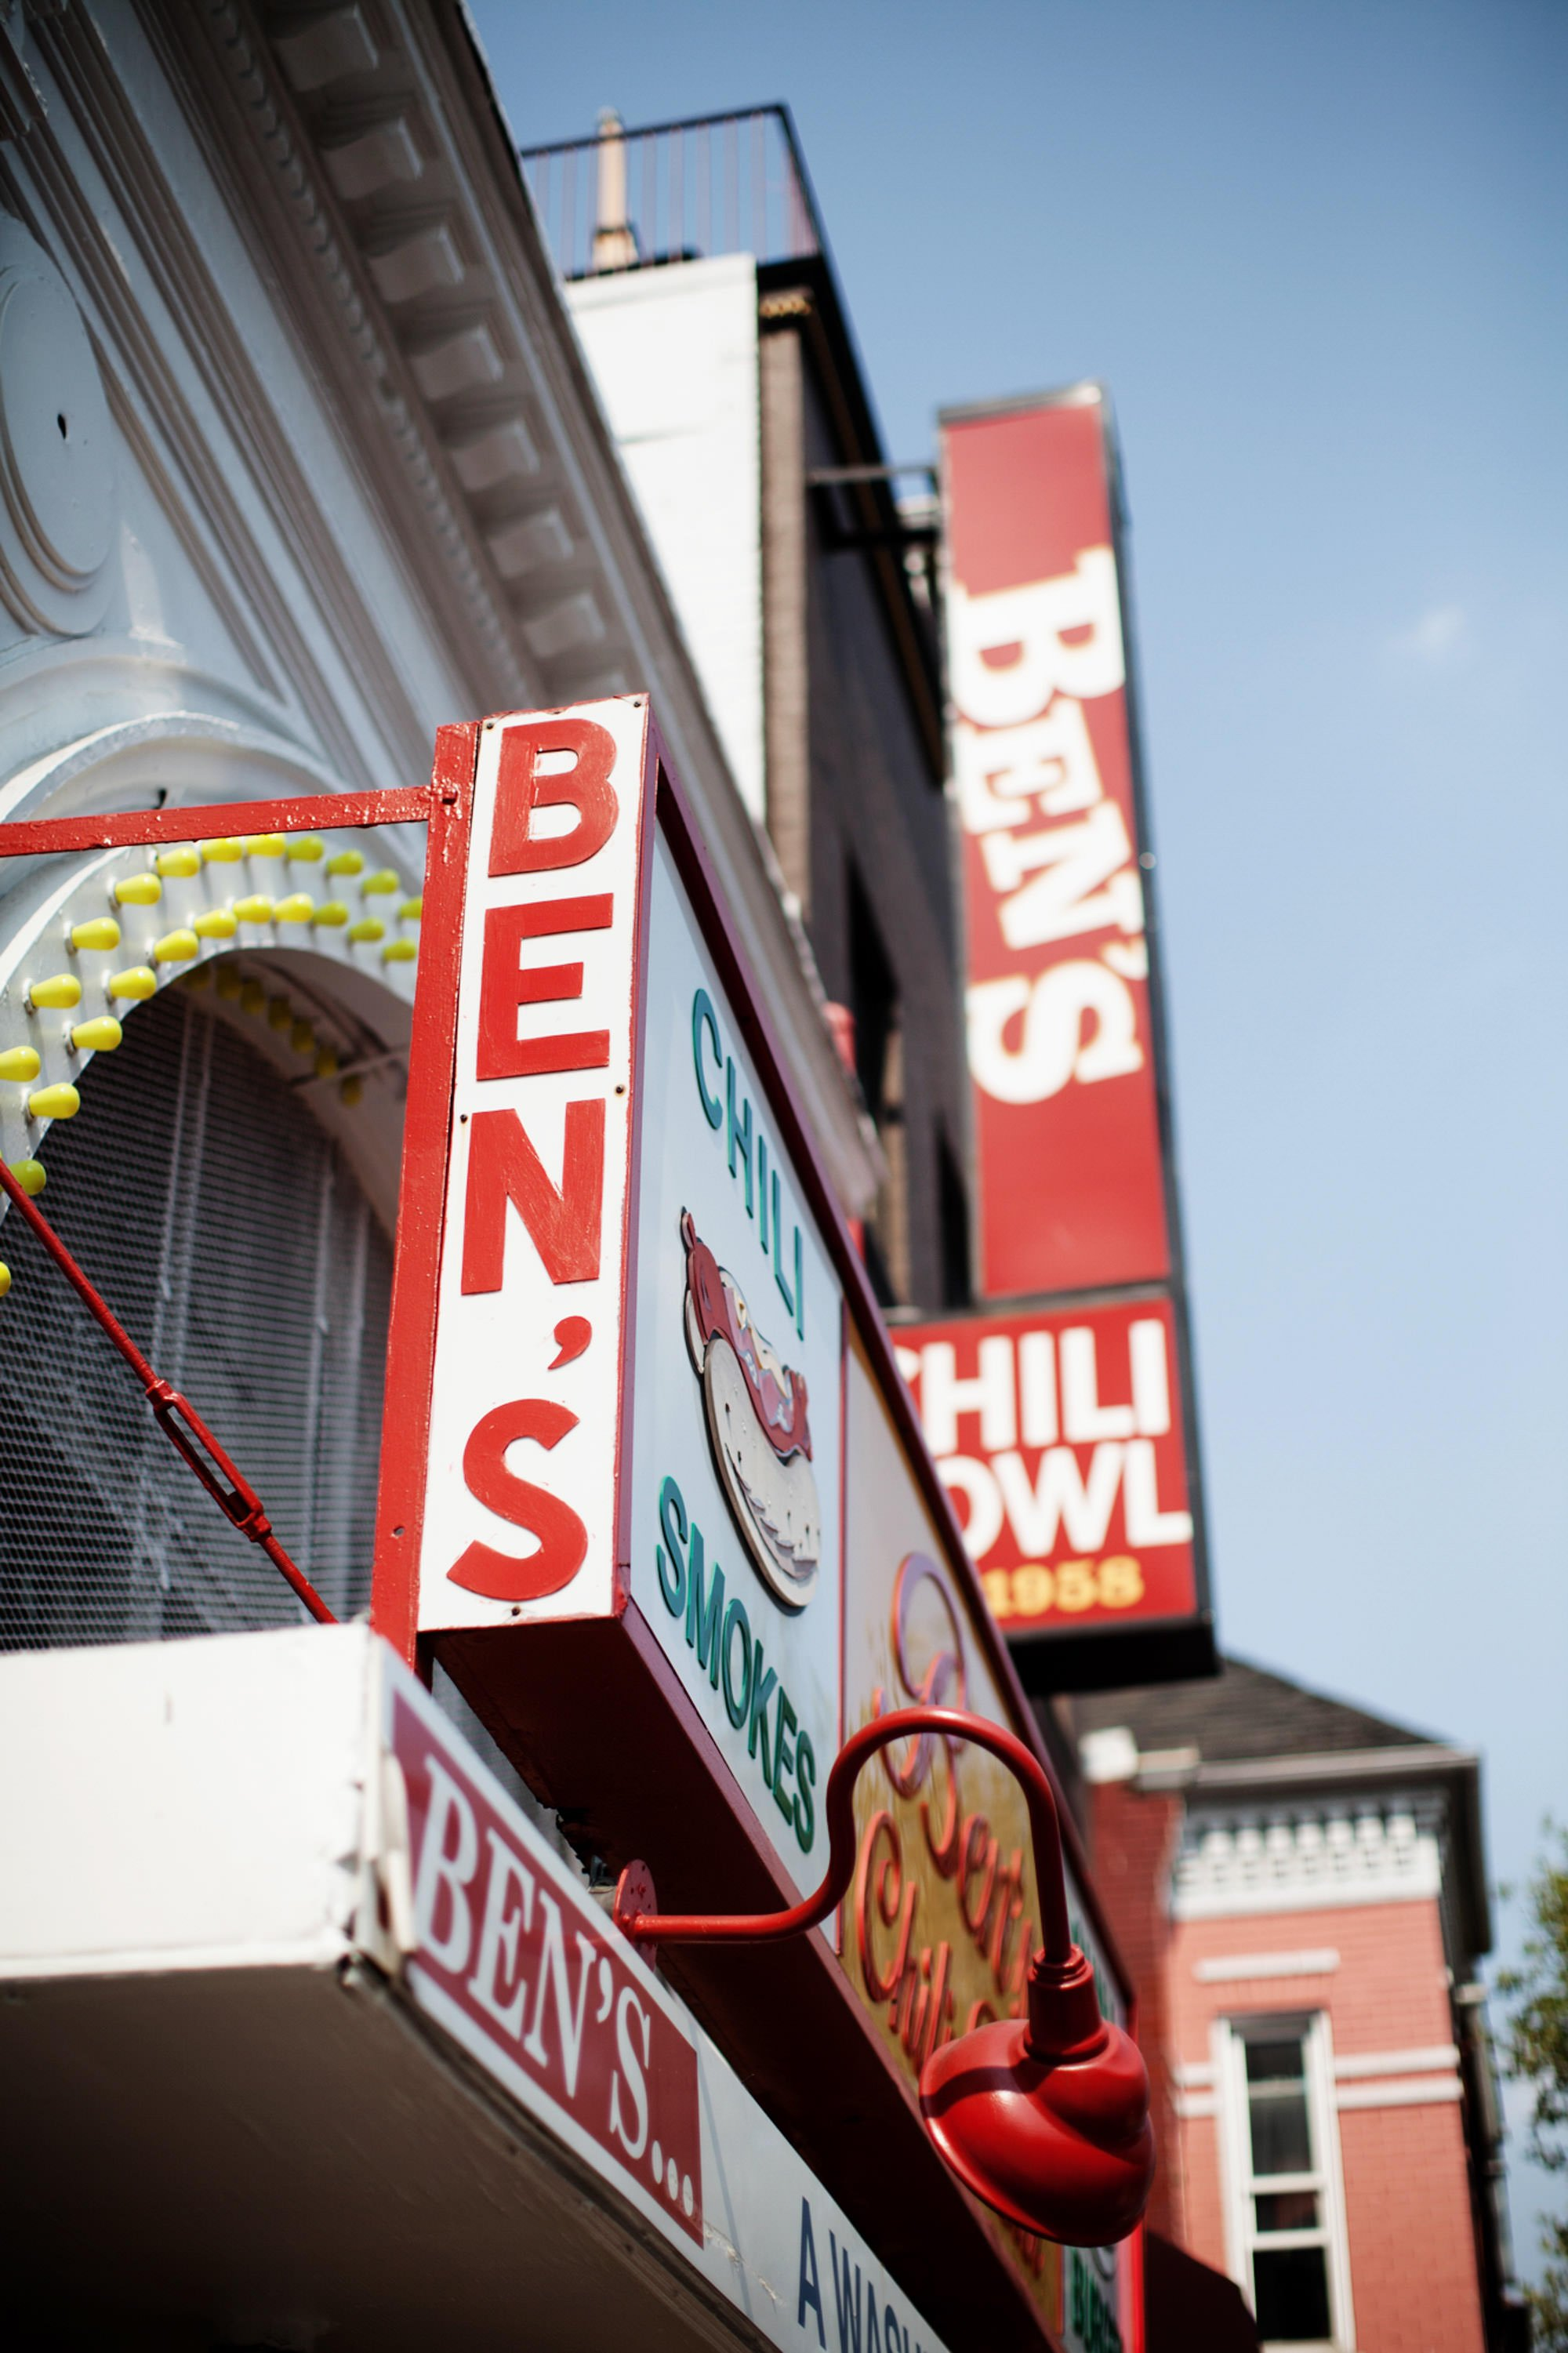 Following their DC Courthouse wedding ceremony, the bride and groom cerebrate at Ben's Chili Bowl.